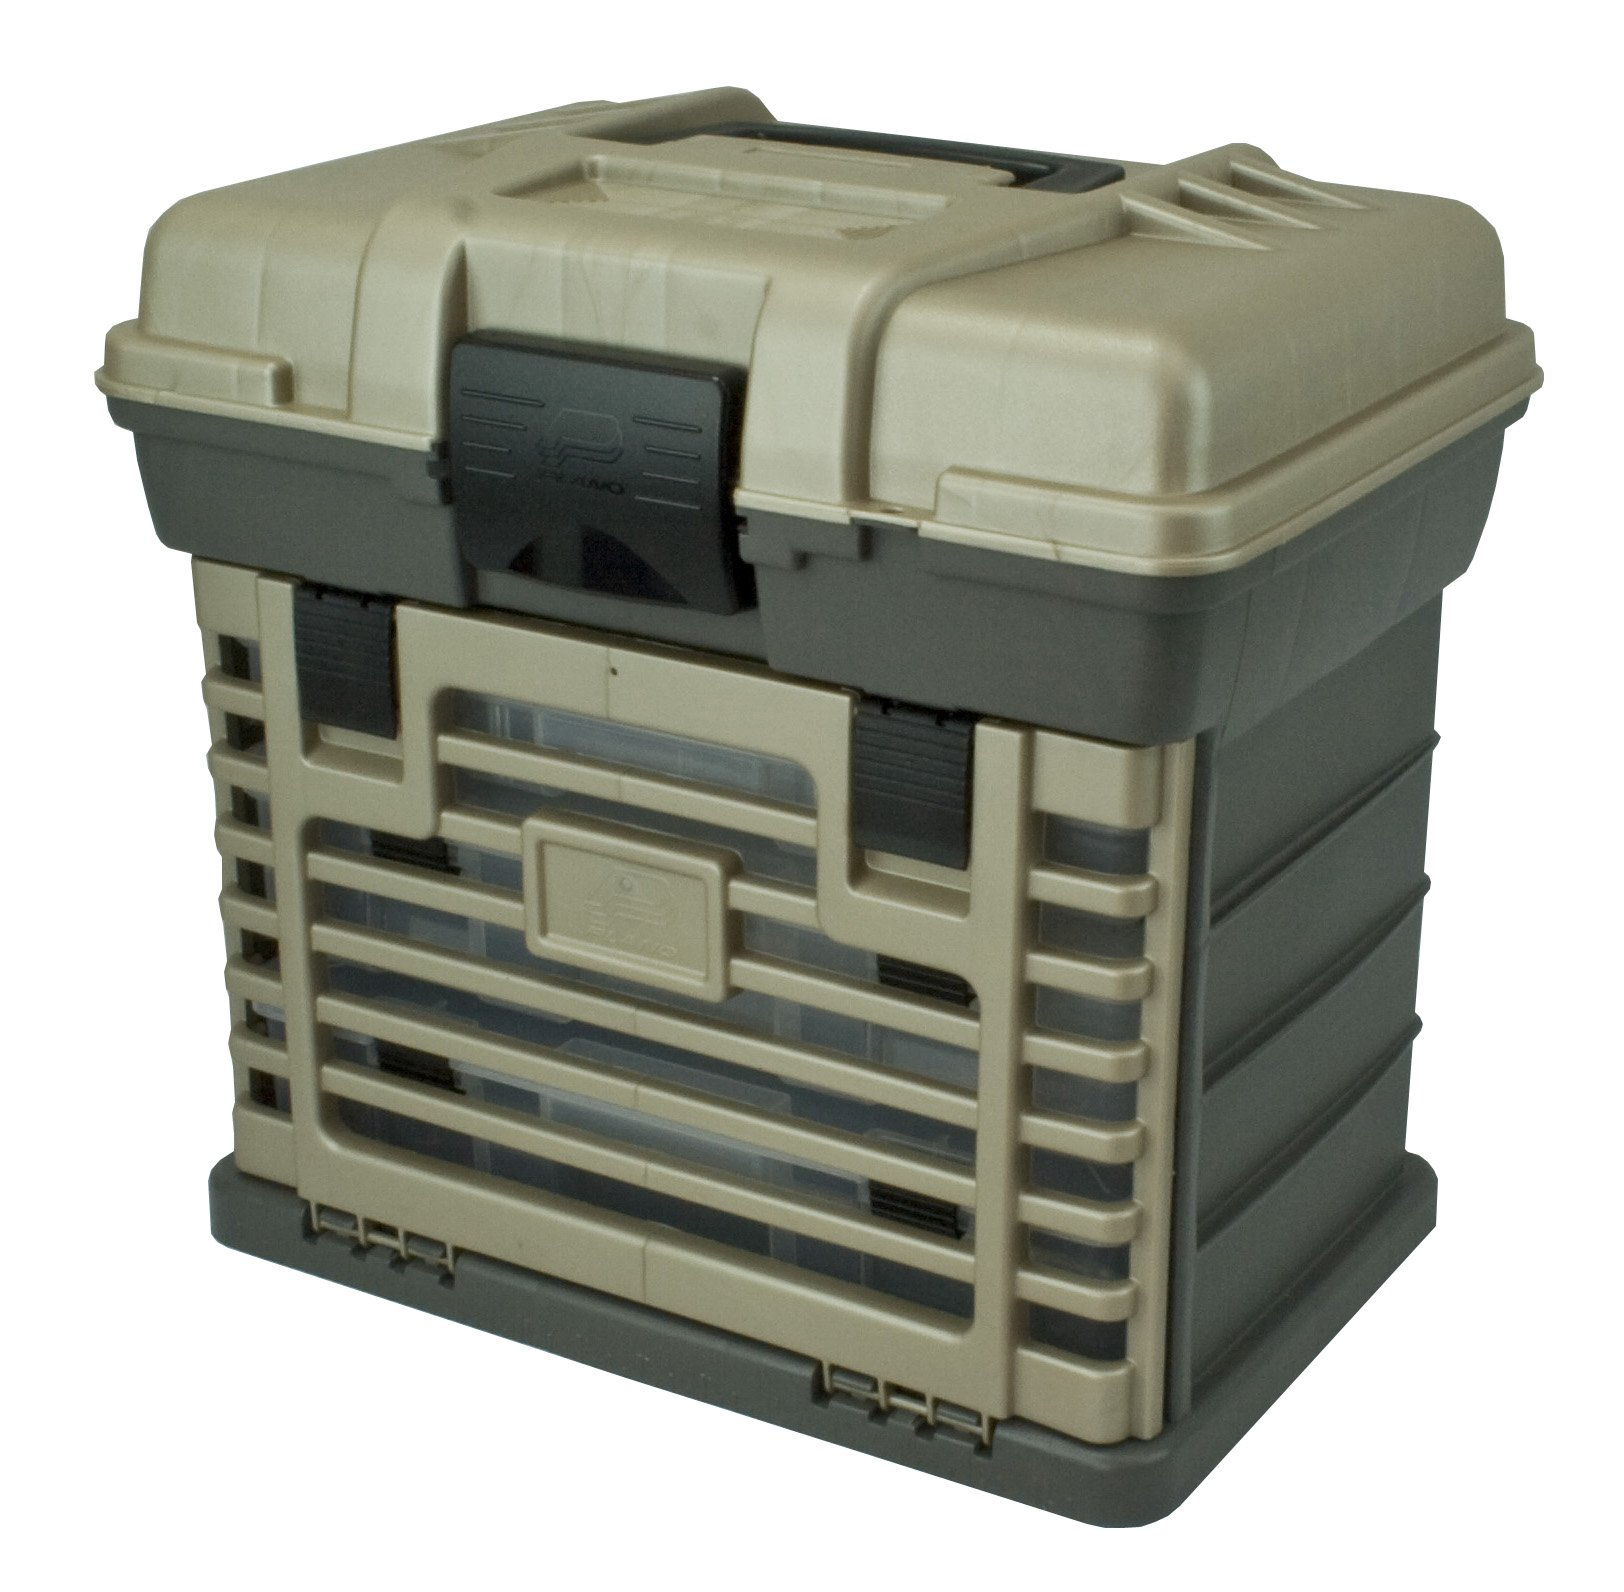 71ofNEltpxL - Plano Molding 1363 Stow N Go Toolbox, Graphite Gray and Sandstone